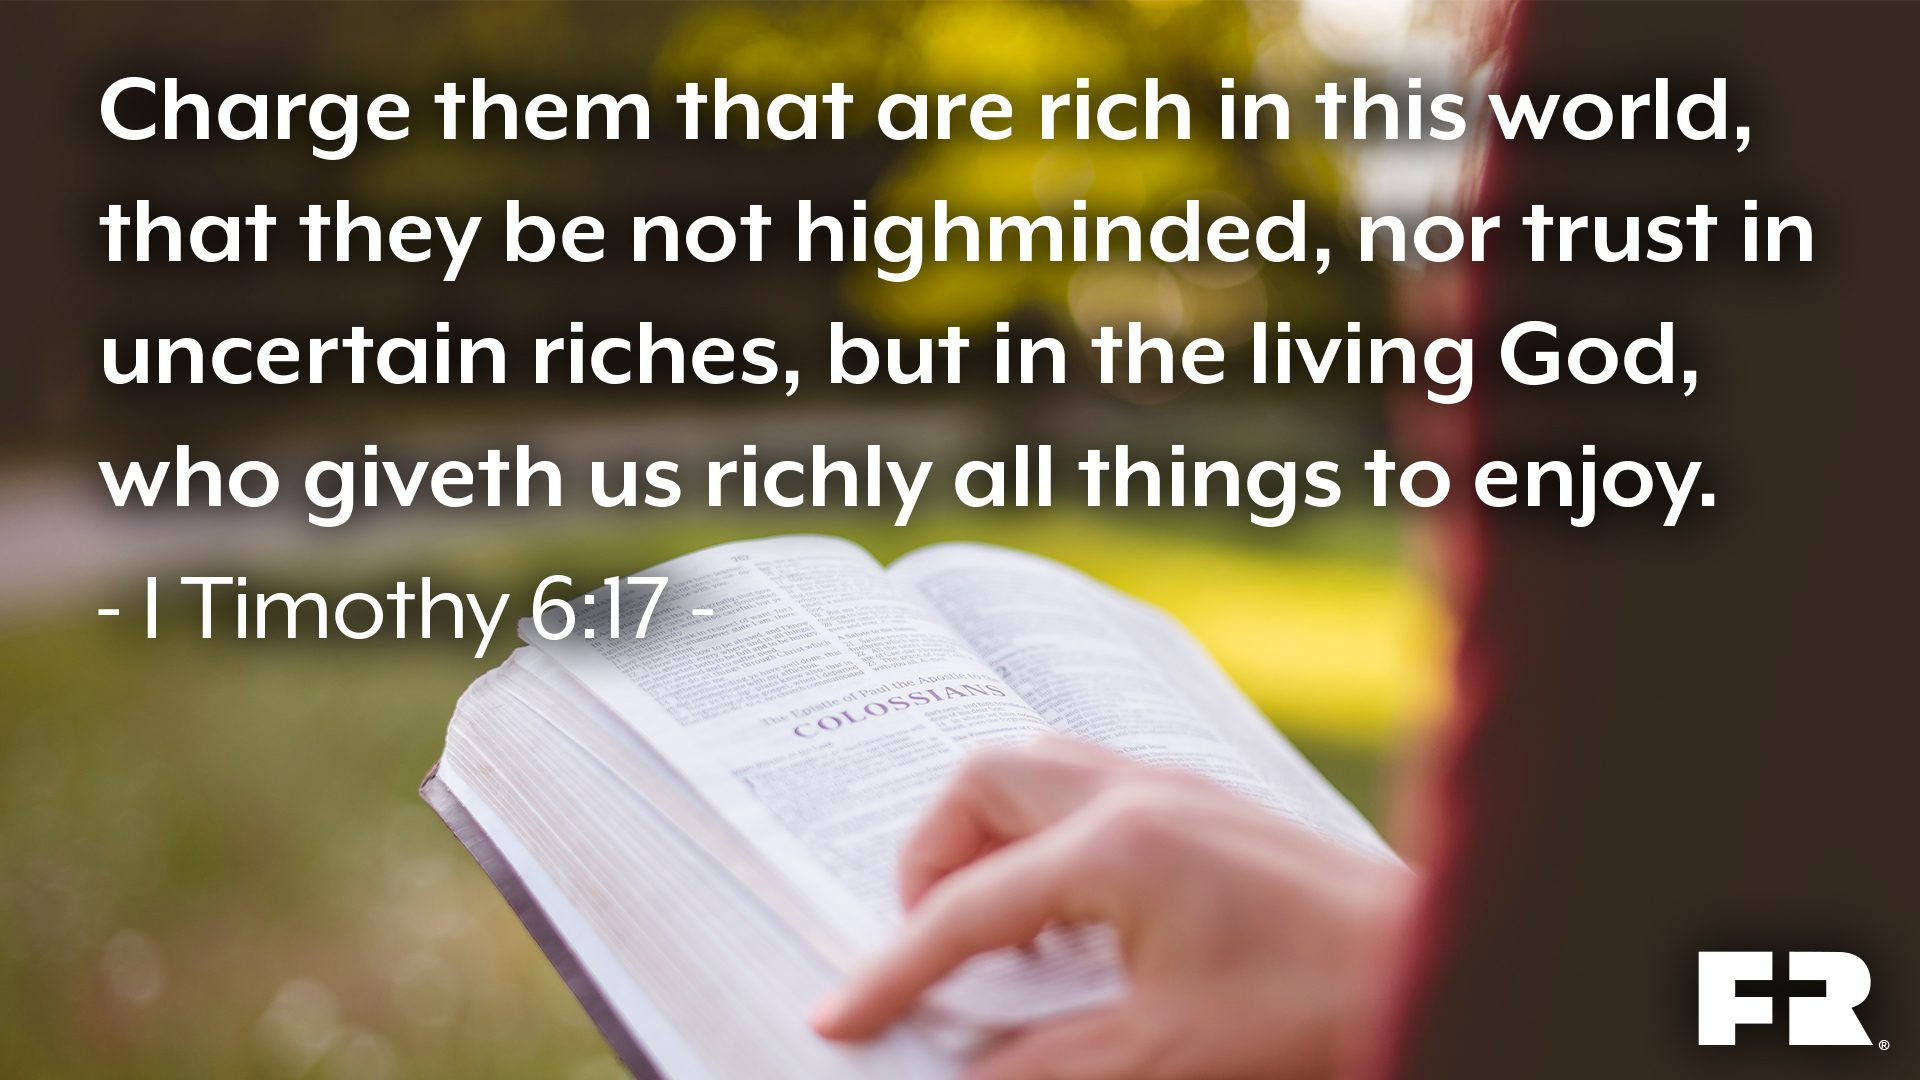 "<strong>""Charge them that are rich in this world, that they be not highminded, nor trust in uncertain riches, but in the living God, who giveth us richly all things to enjoy.""</strong>"